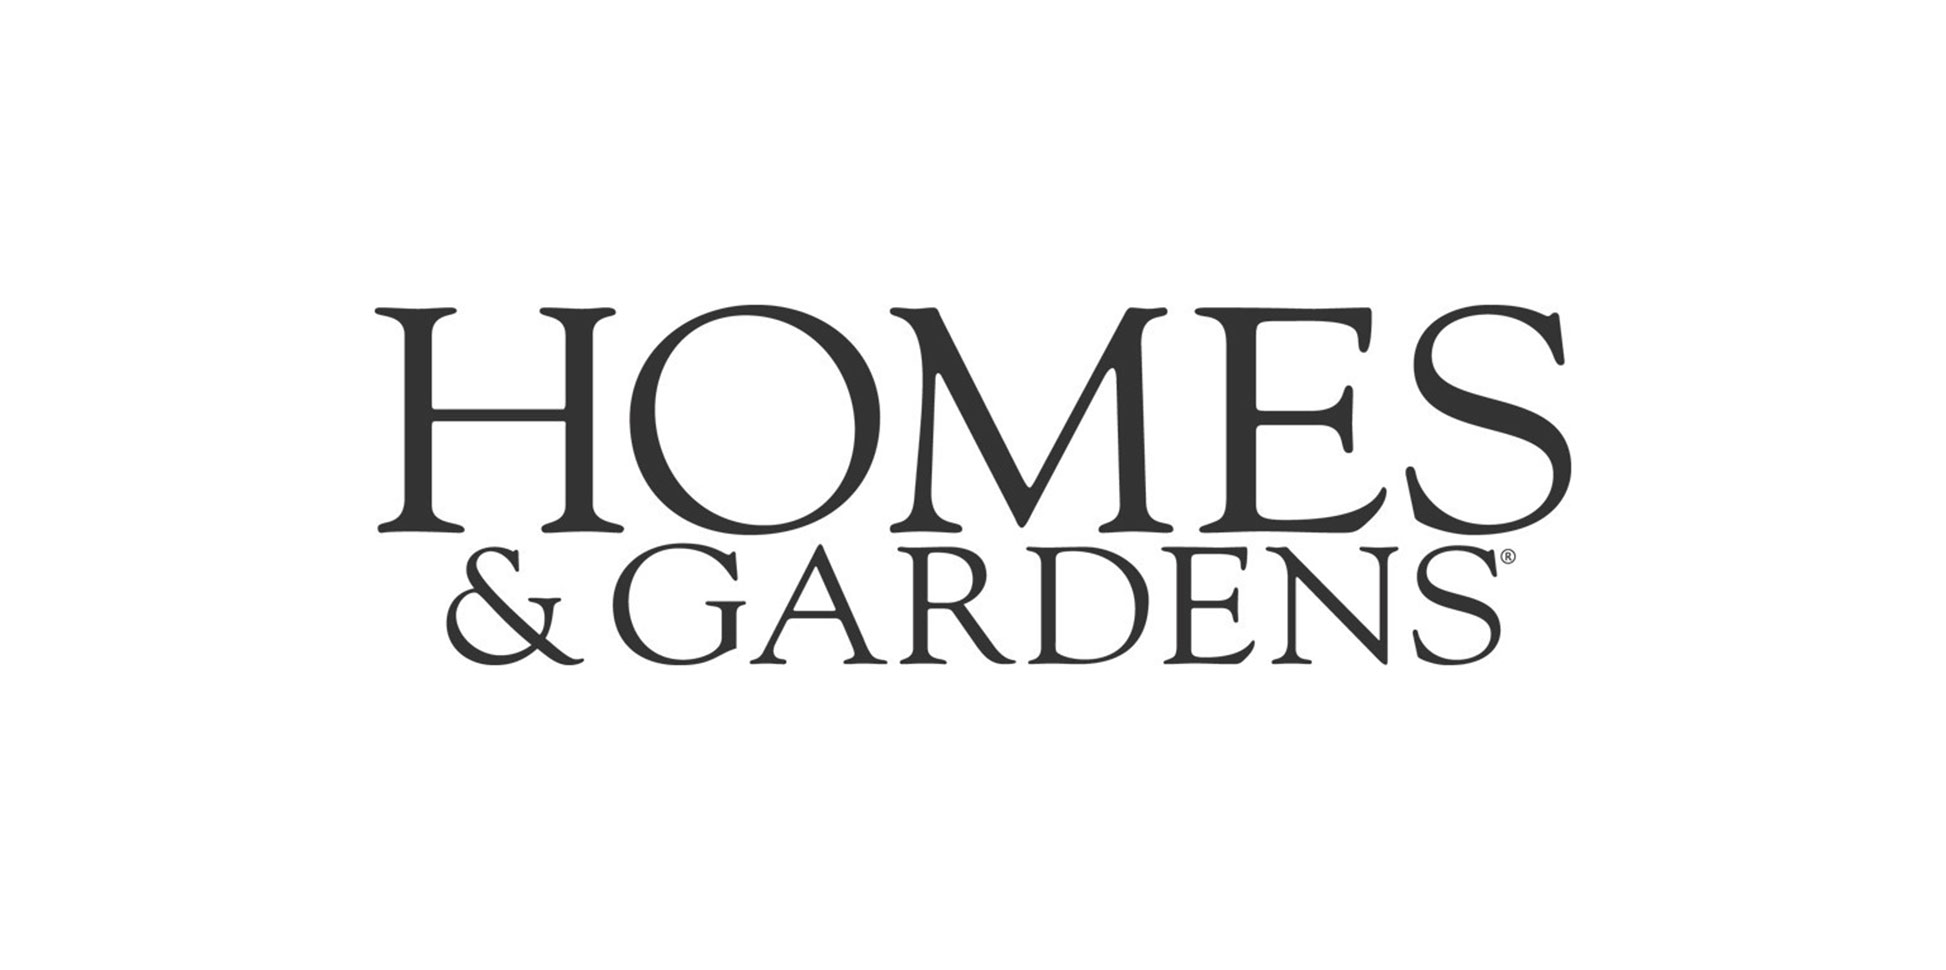 Homes and gardens logo Homes and gardens logo